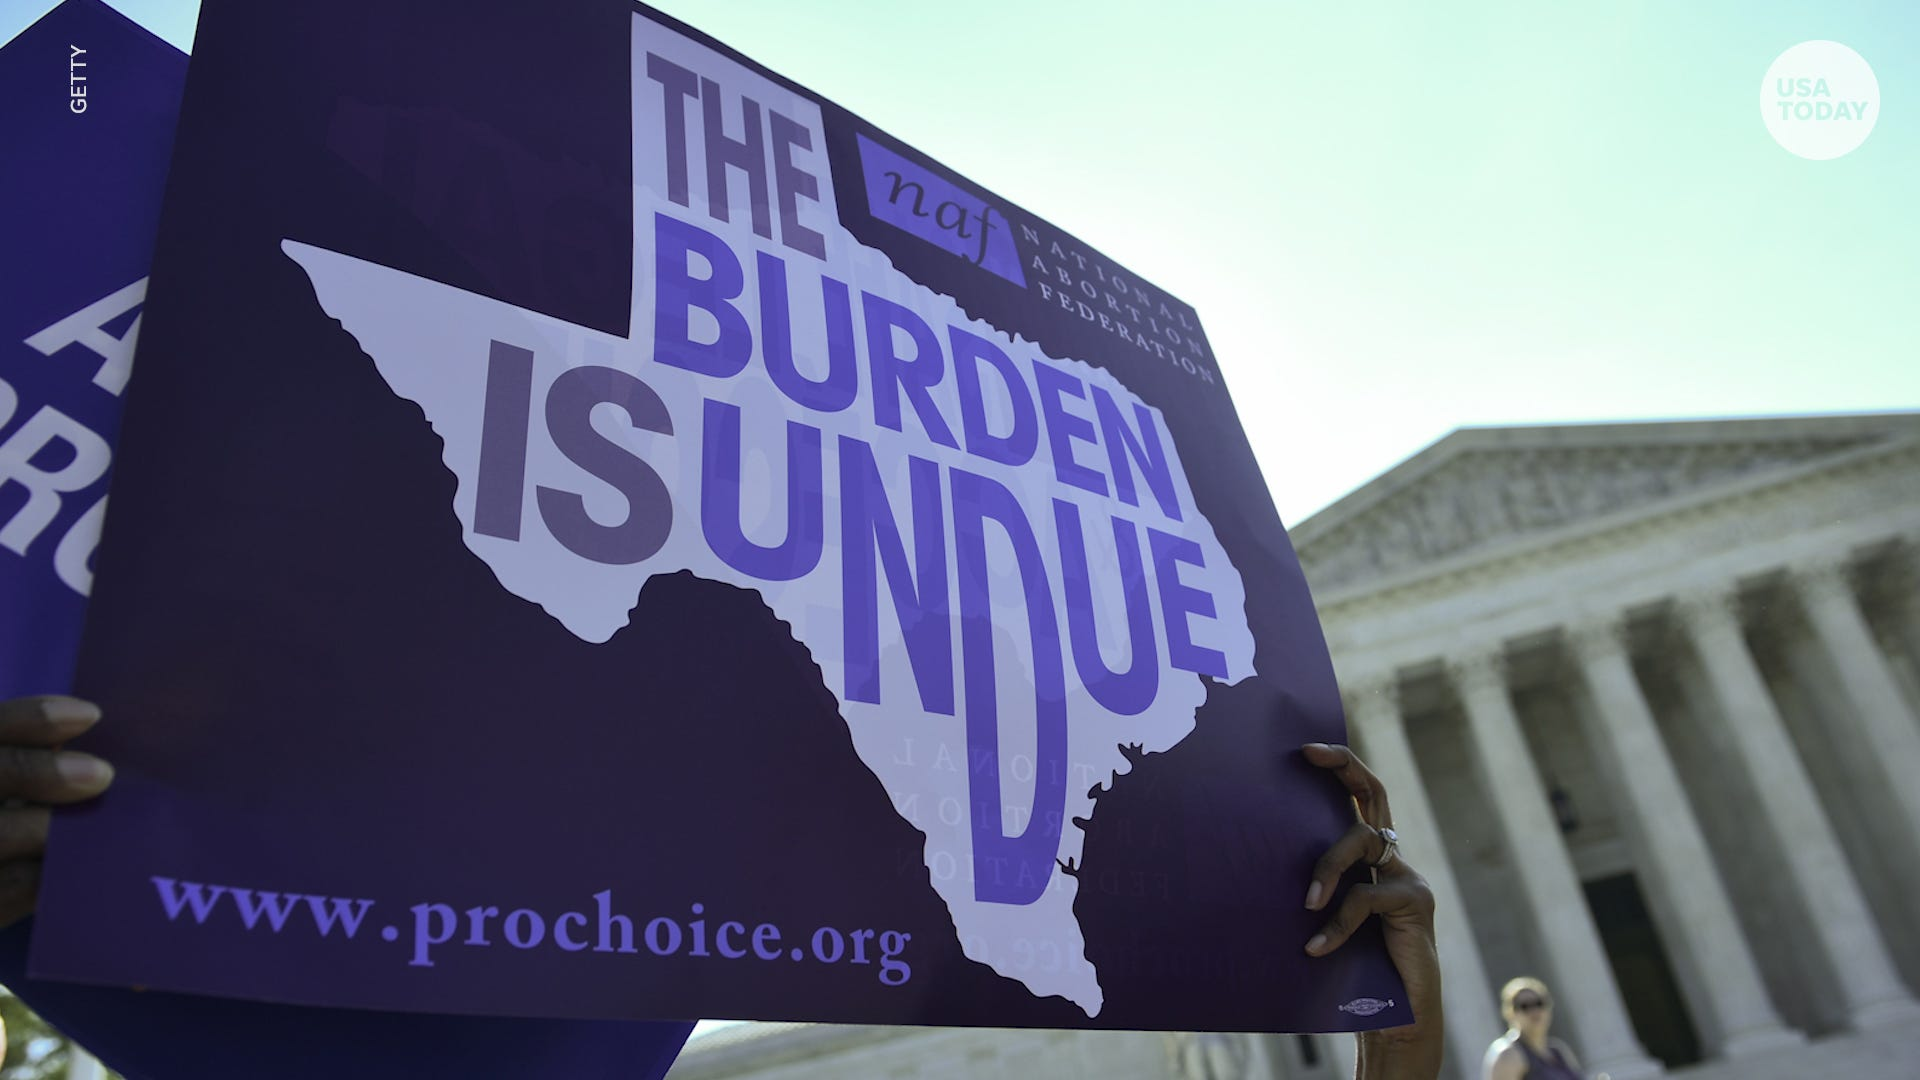 Texas doctor performs abortion, despite recent law banning abortions